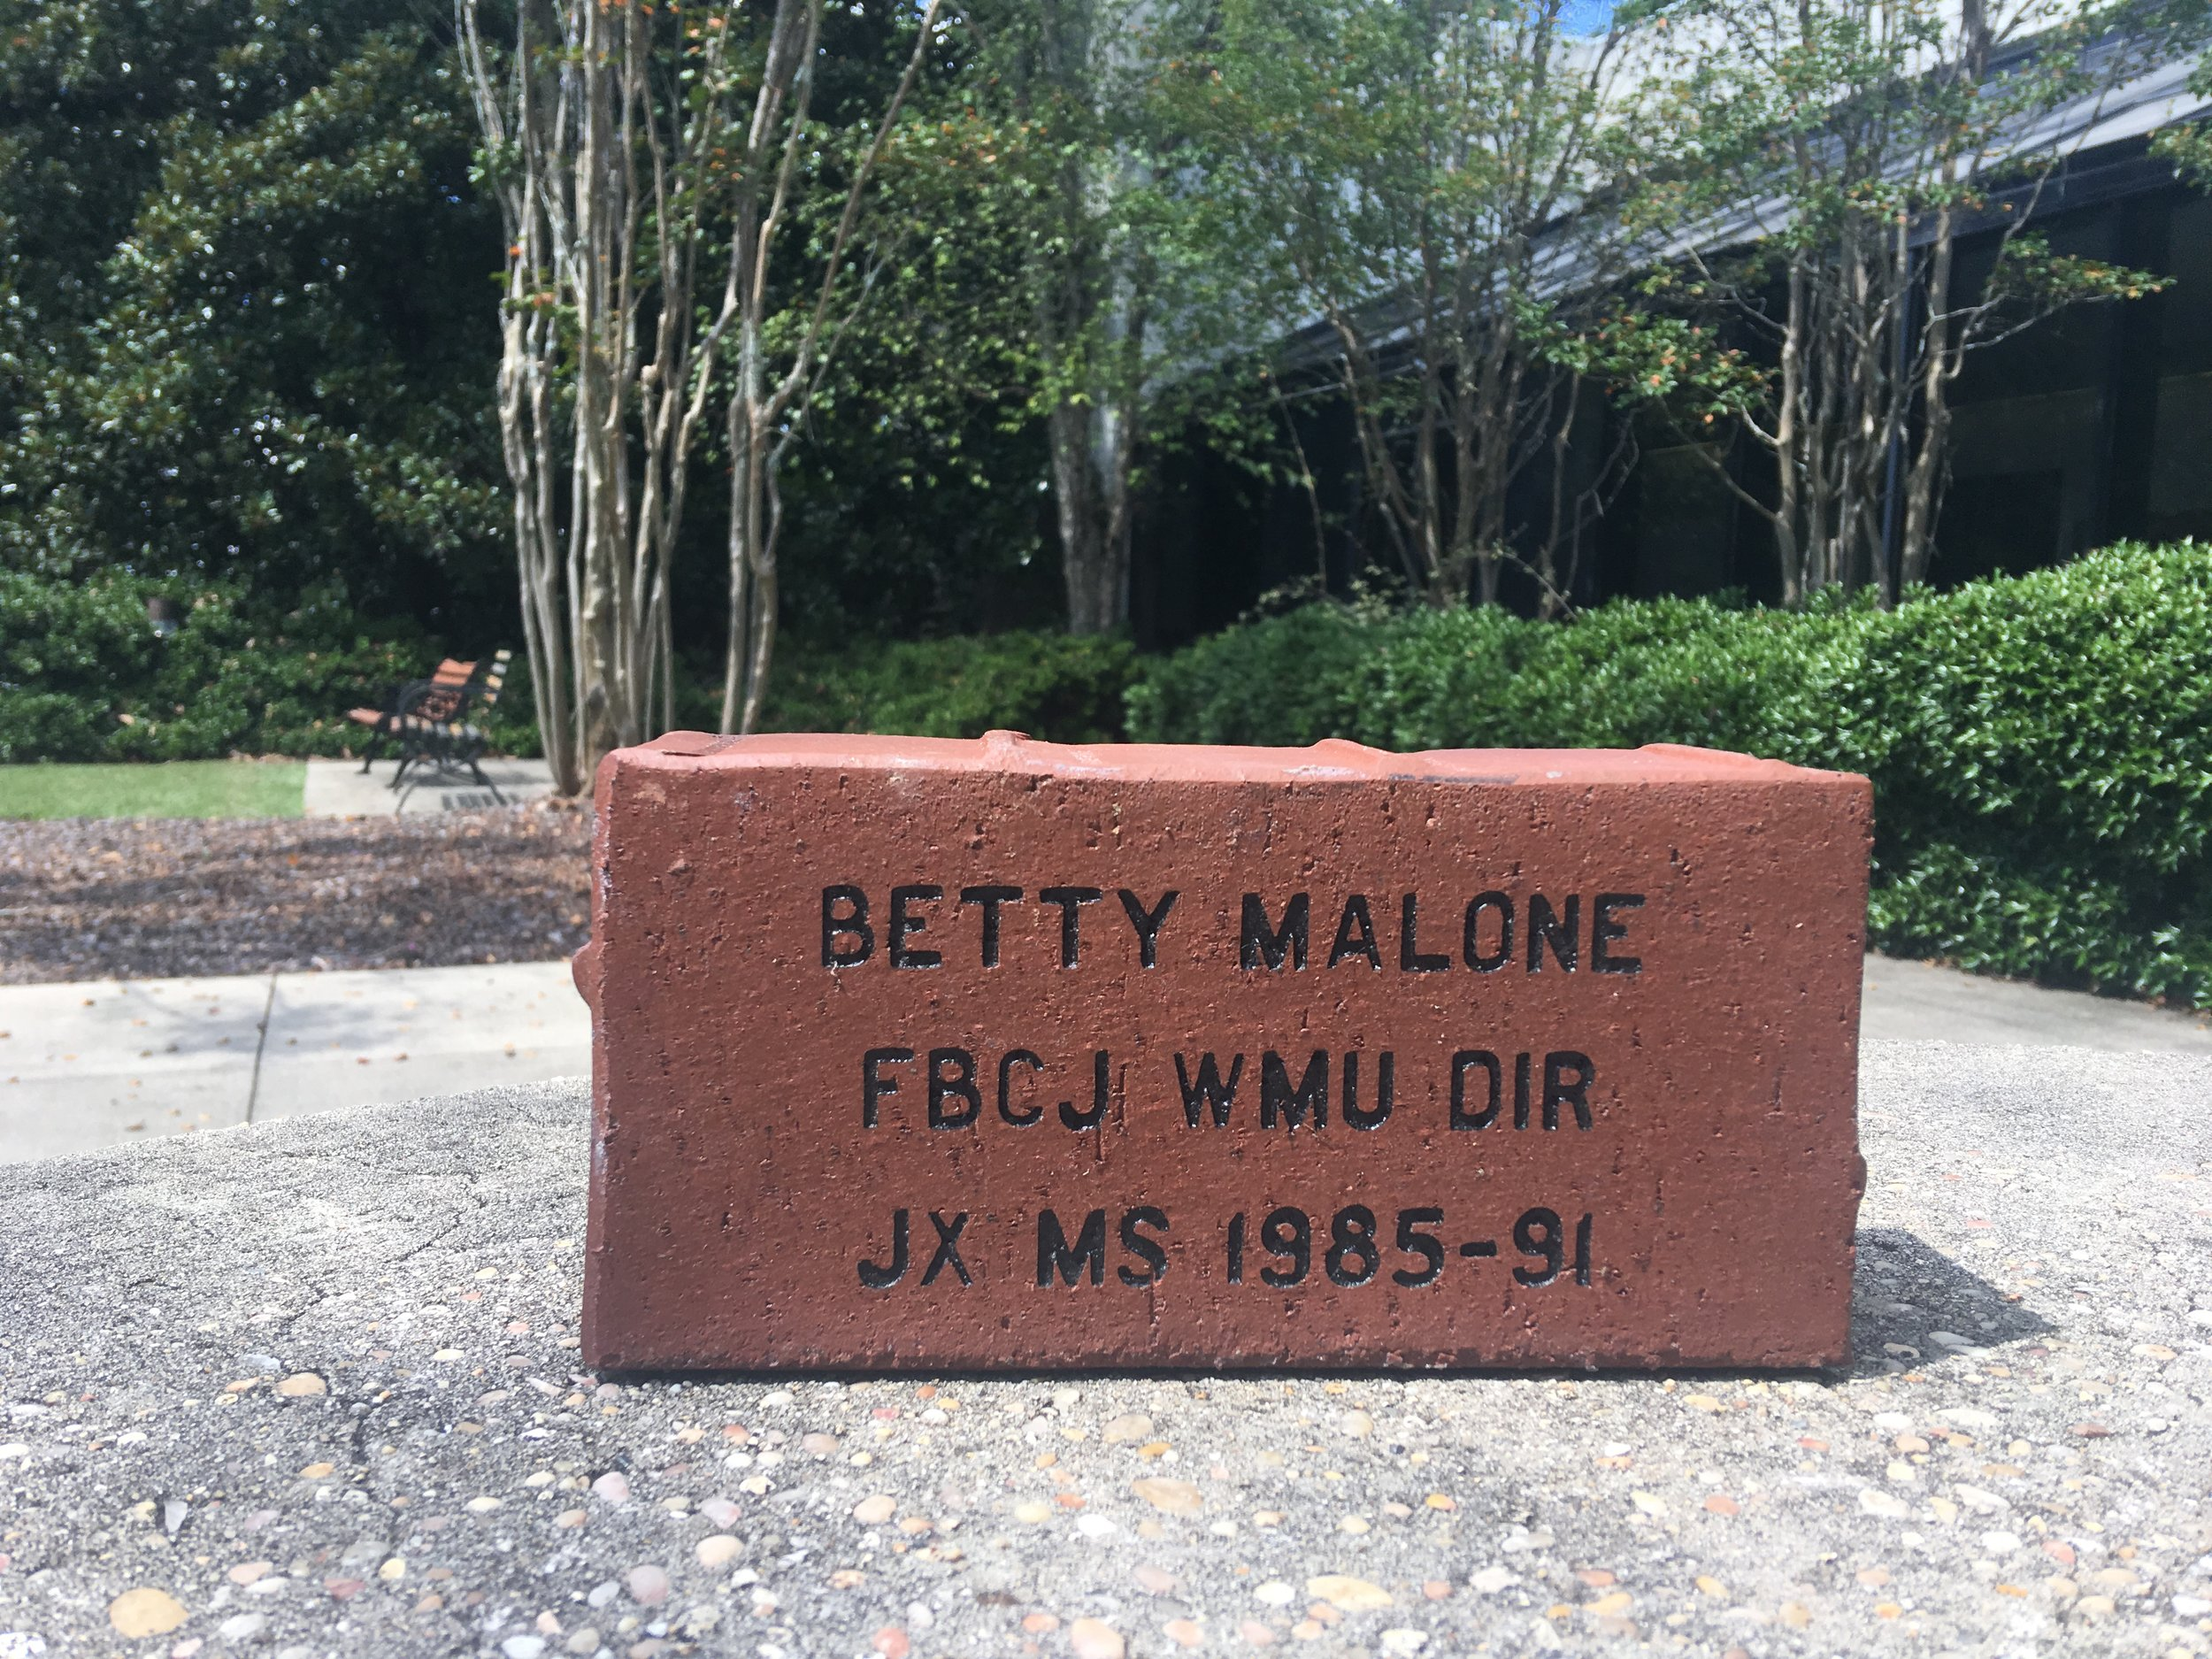 A brick was bought in memory of Betty Malone and her years of holding the missions banner.